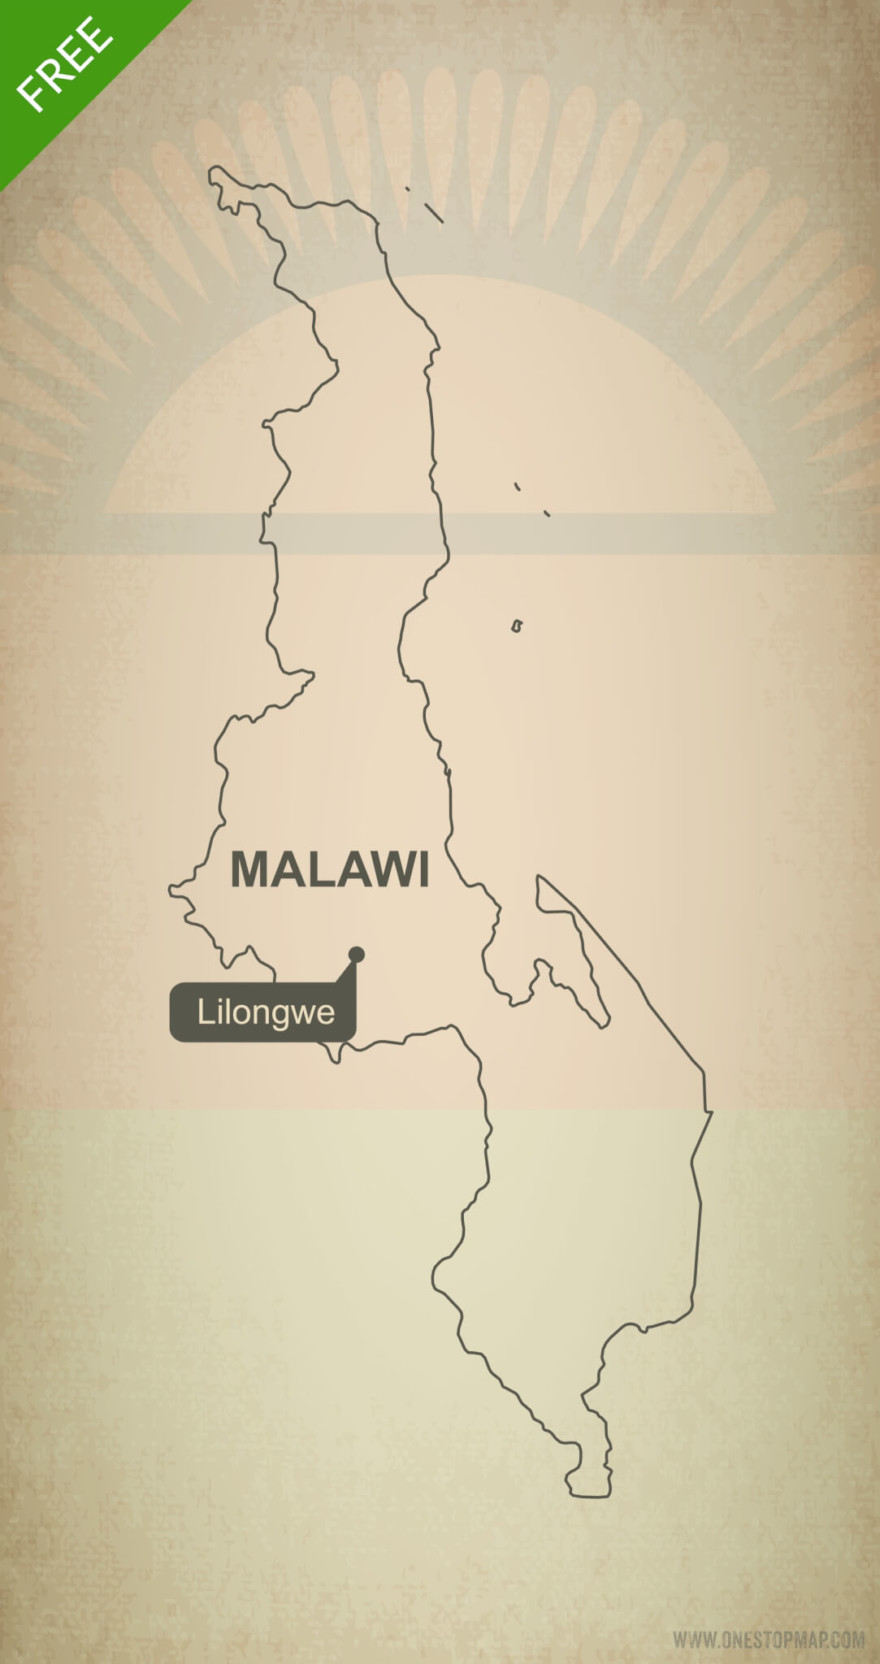 Free vector map of Malawi outline